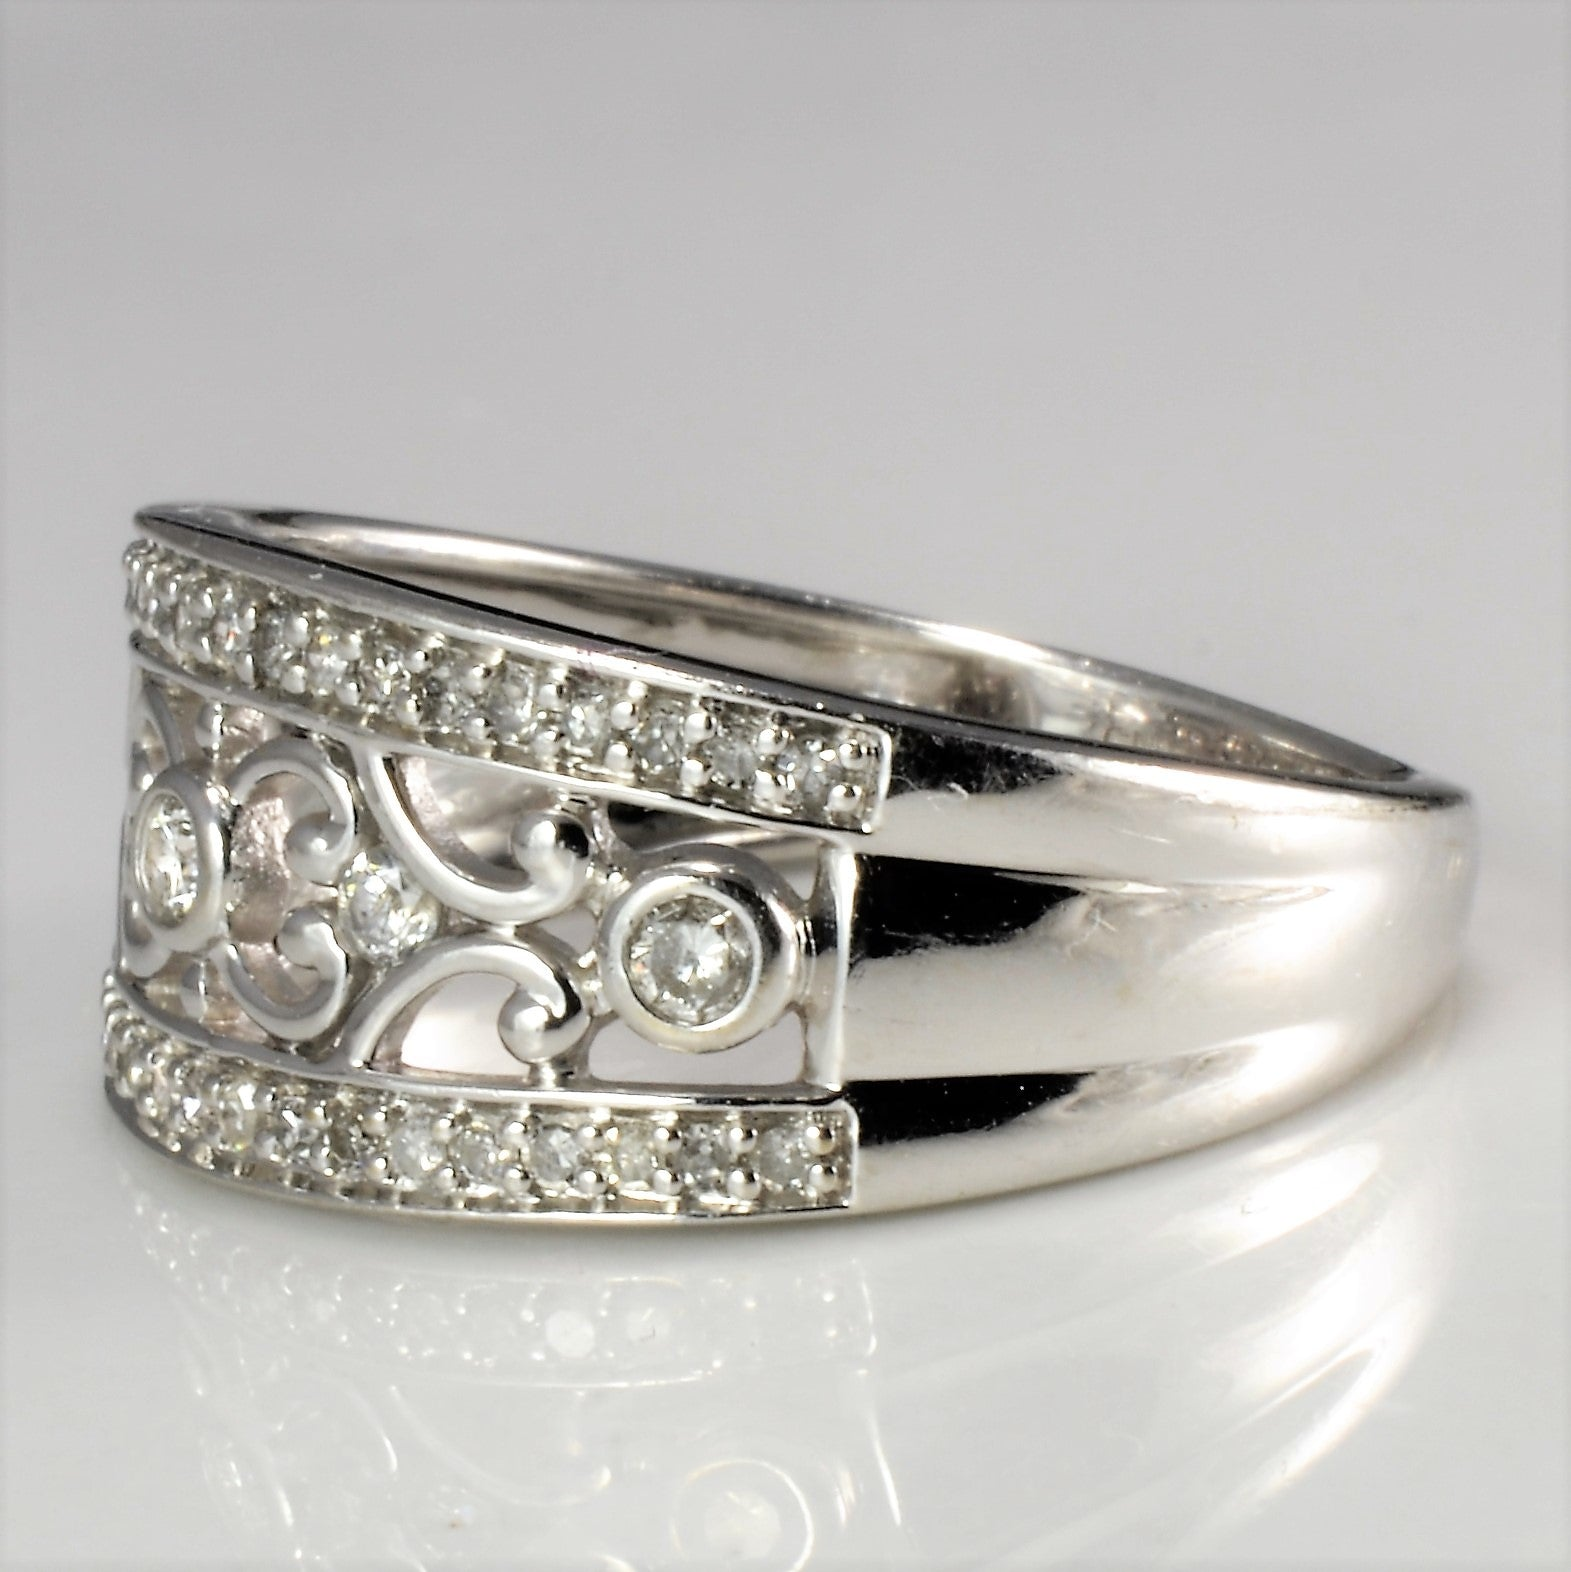 Filigree Design Diamond Wide Ring | 0.28 ctw, SZ 5.75 |